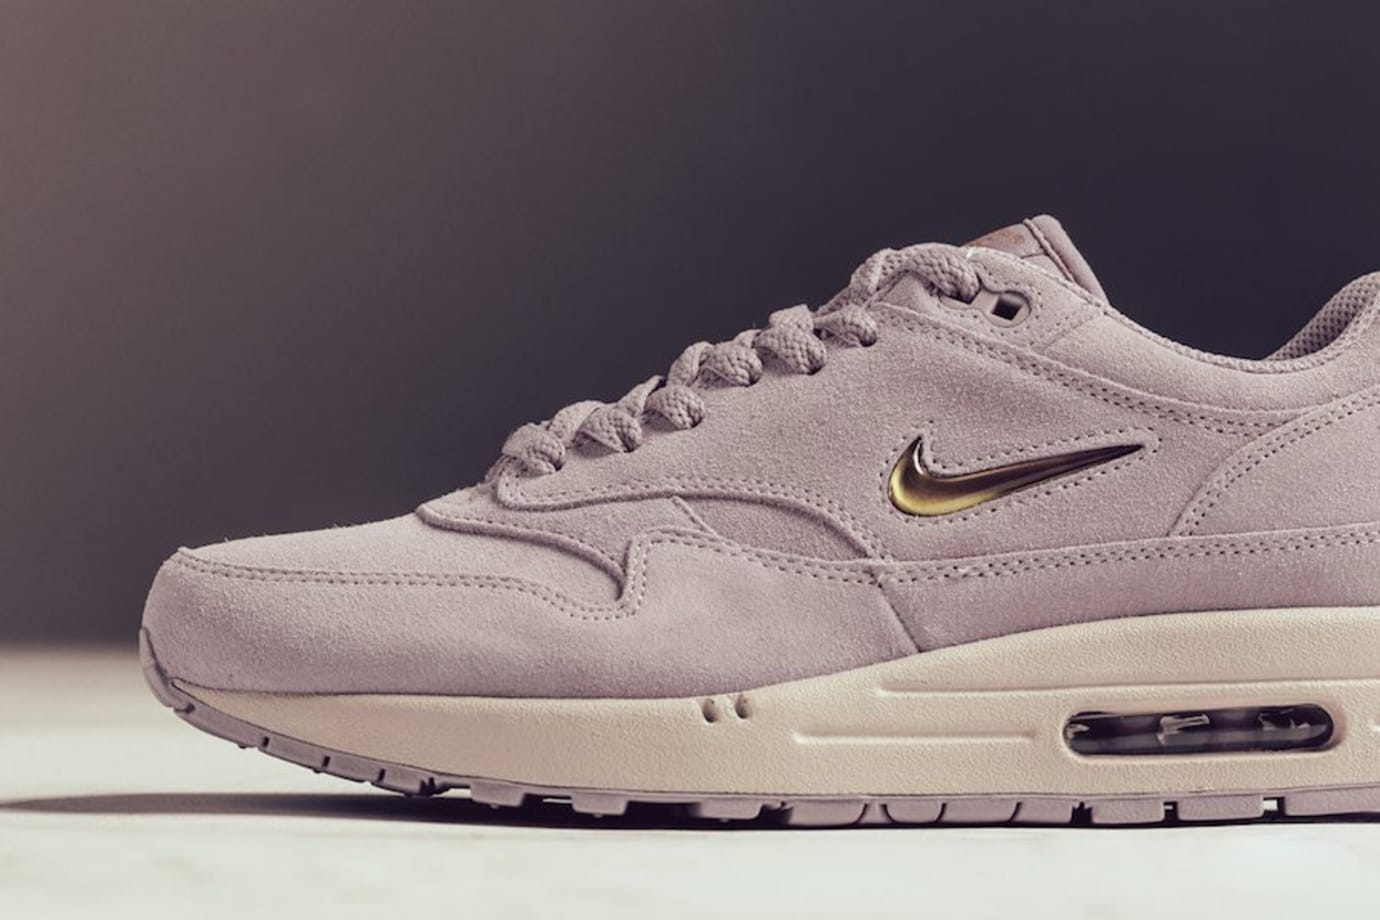 9718862654 Image via Feature · Nike Air Max 1 Jewel 'Particle Rose' 918354-601 (Swoosh)